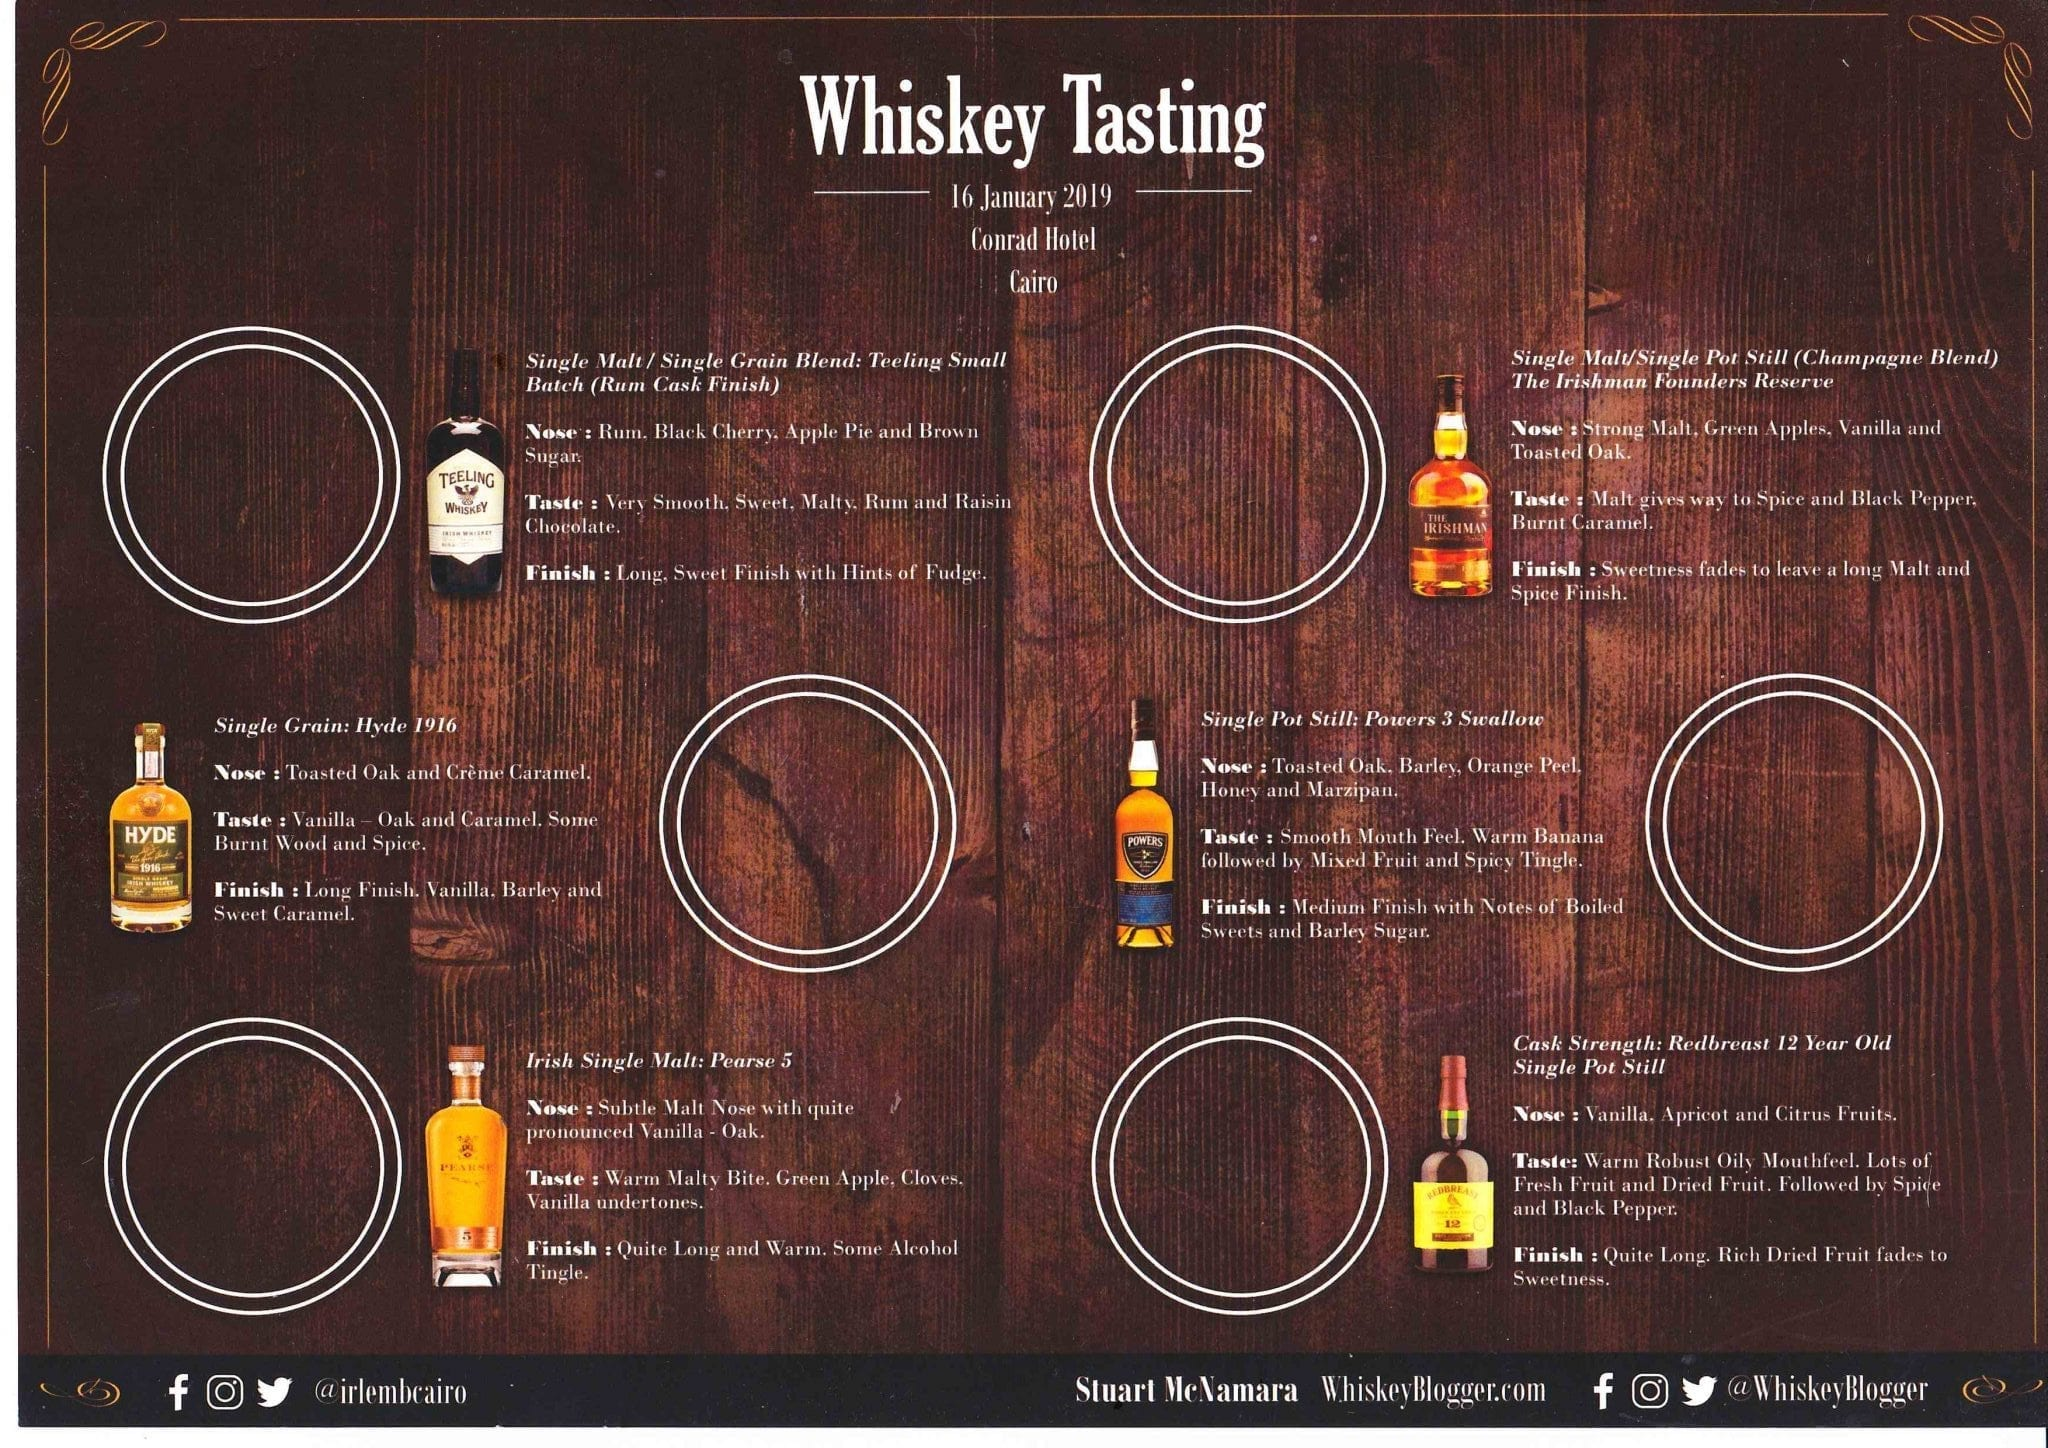 irish Whiskey Tasting in the Conrad CairoHotel by Irish Whiskey Blogger Stuart McNamara